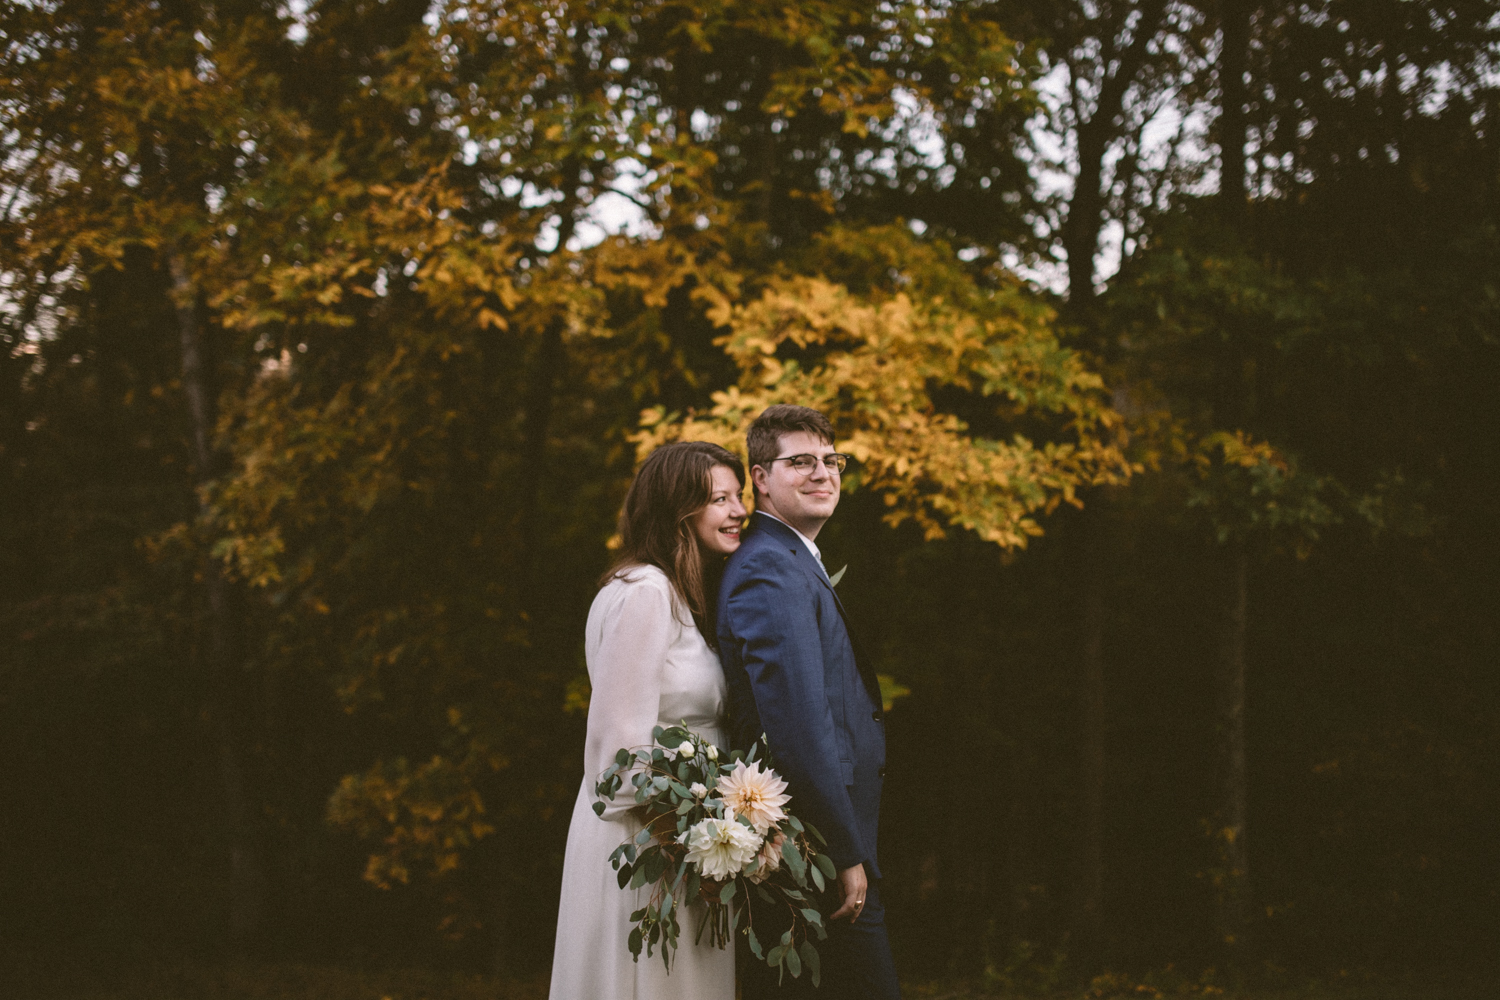 Tennessee_Based_Wedding_Photographers_-4.jpg